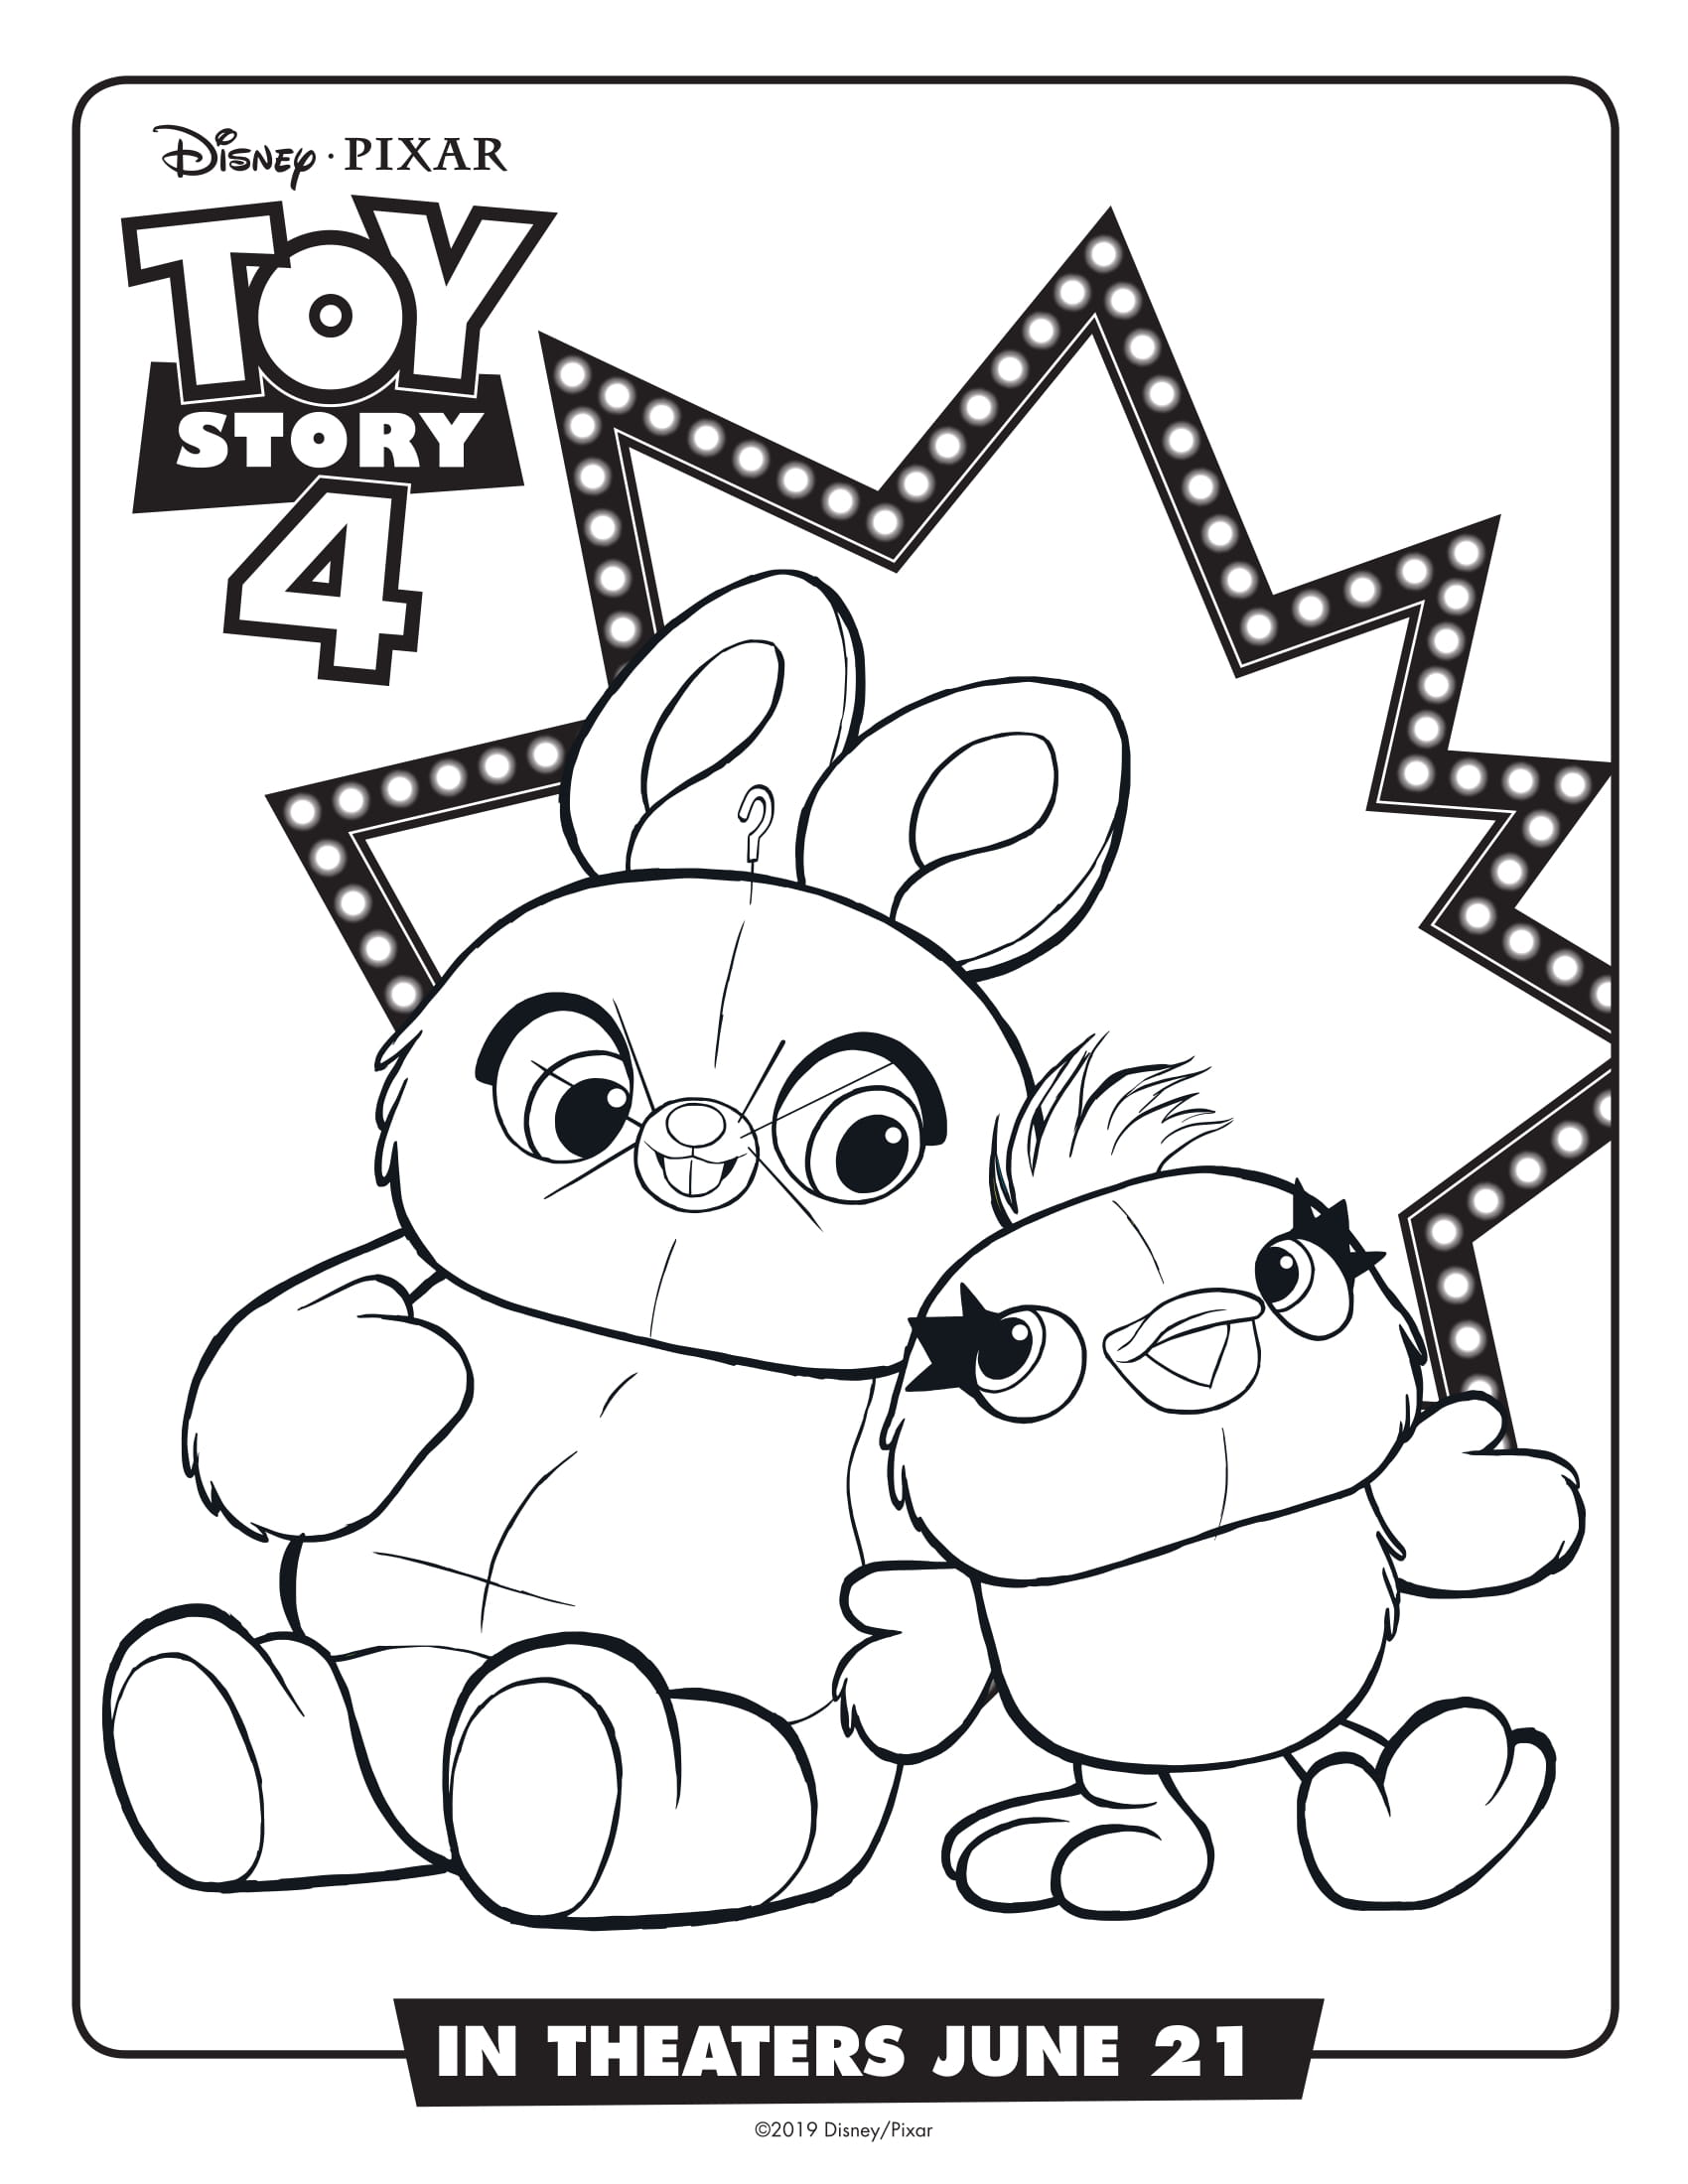 Toy Story 4 Coloring Pages Best Coloring Pages For Kids